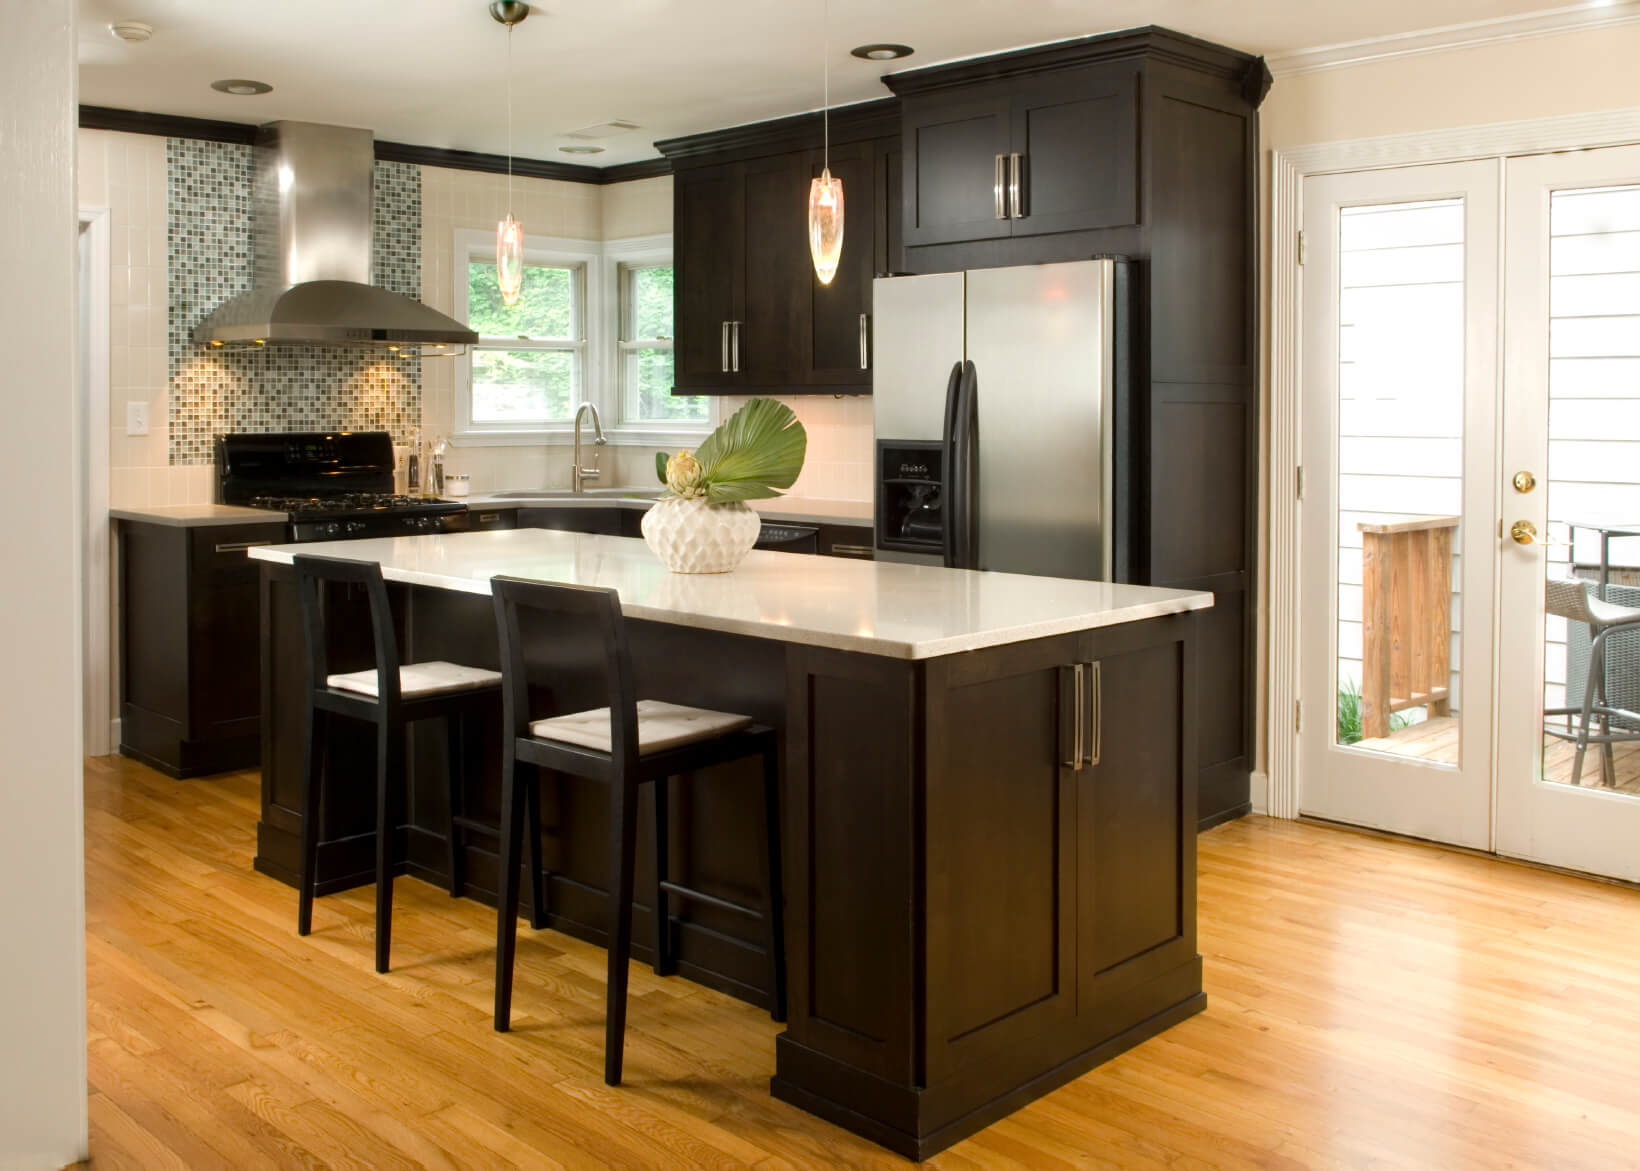 High contrast white wall kitchen with dark wood paneling and cupboards, paired with white countertops and light hardwood floor.